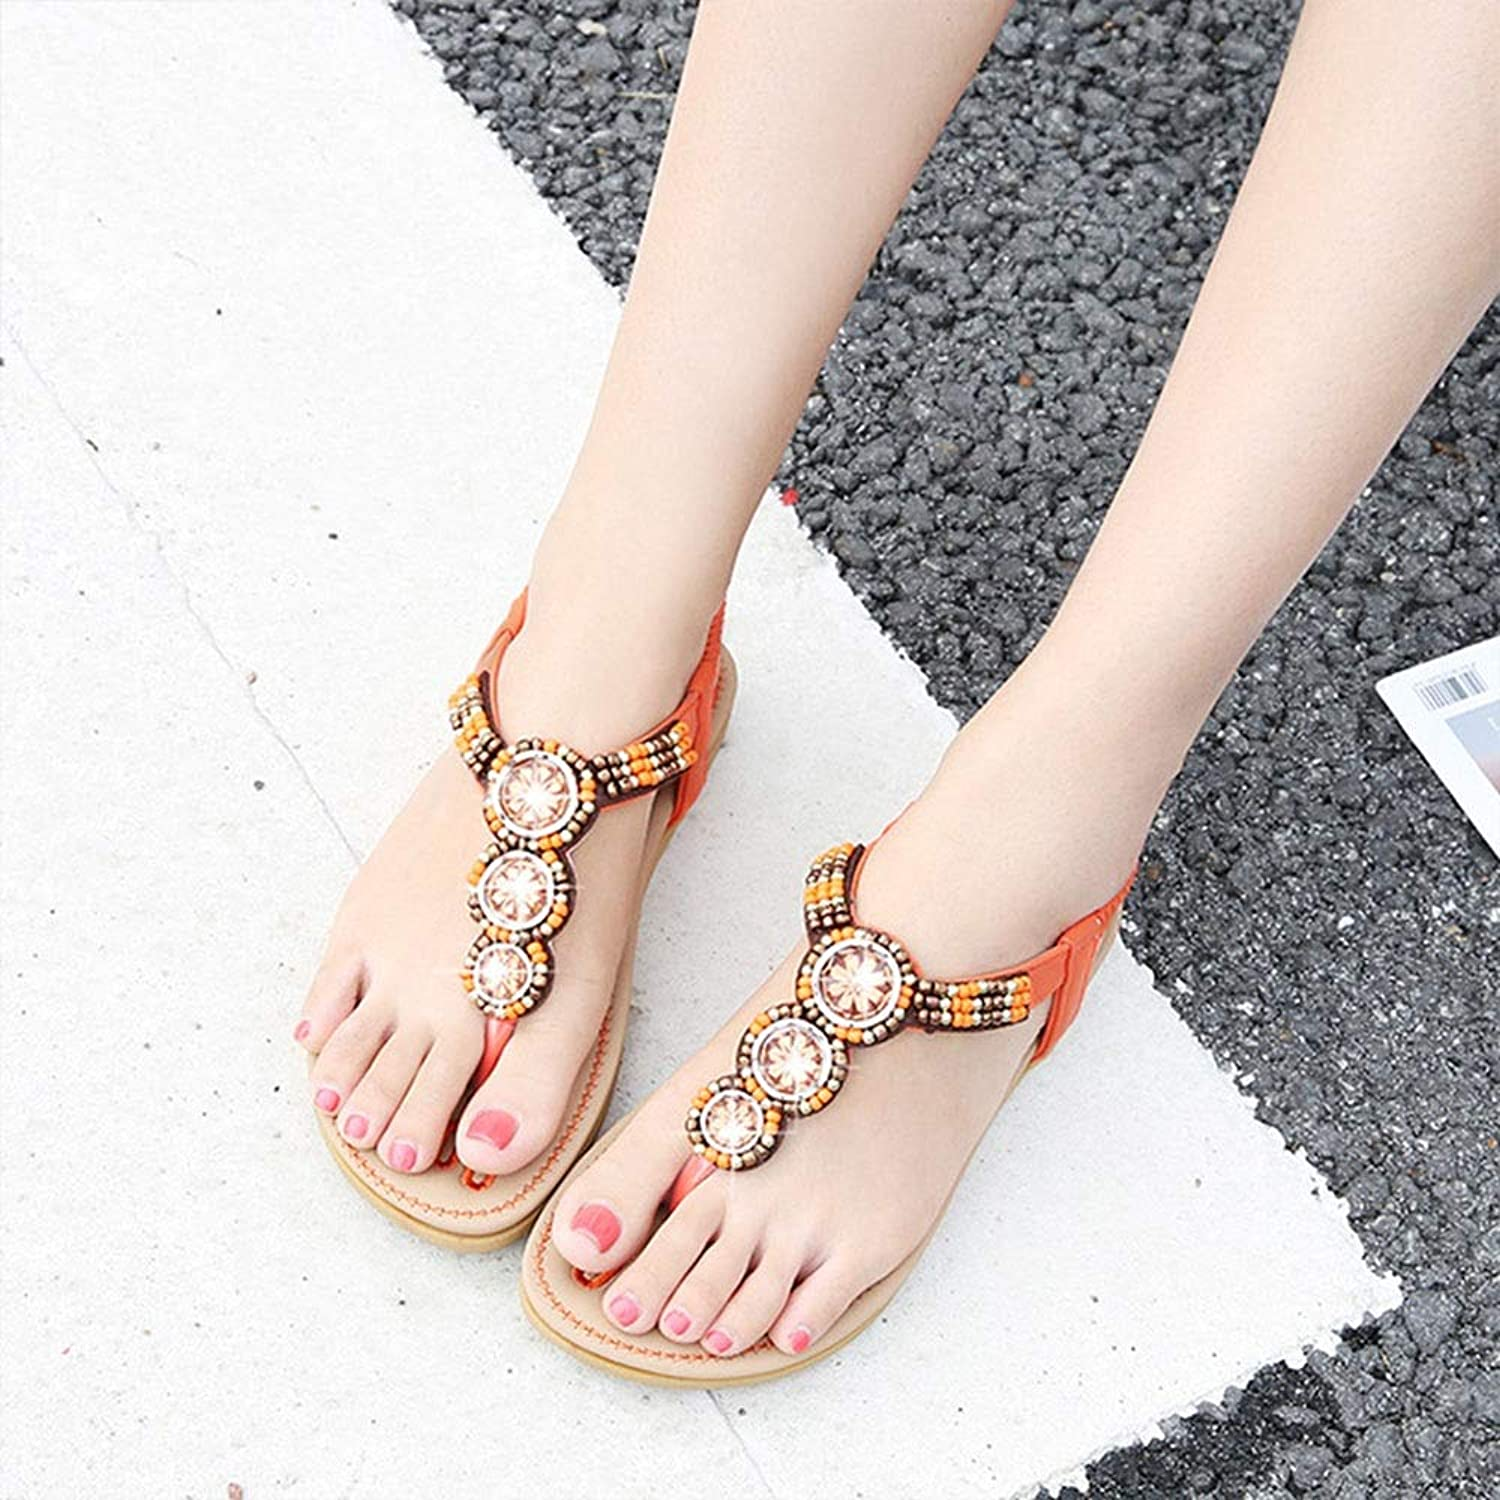 WENNEW Bohemian Sandals Beaded Star Distaff Sandals Round Head Easy Women's shoes